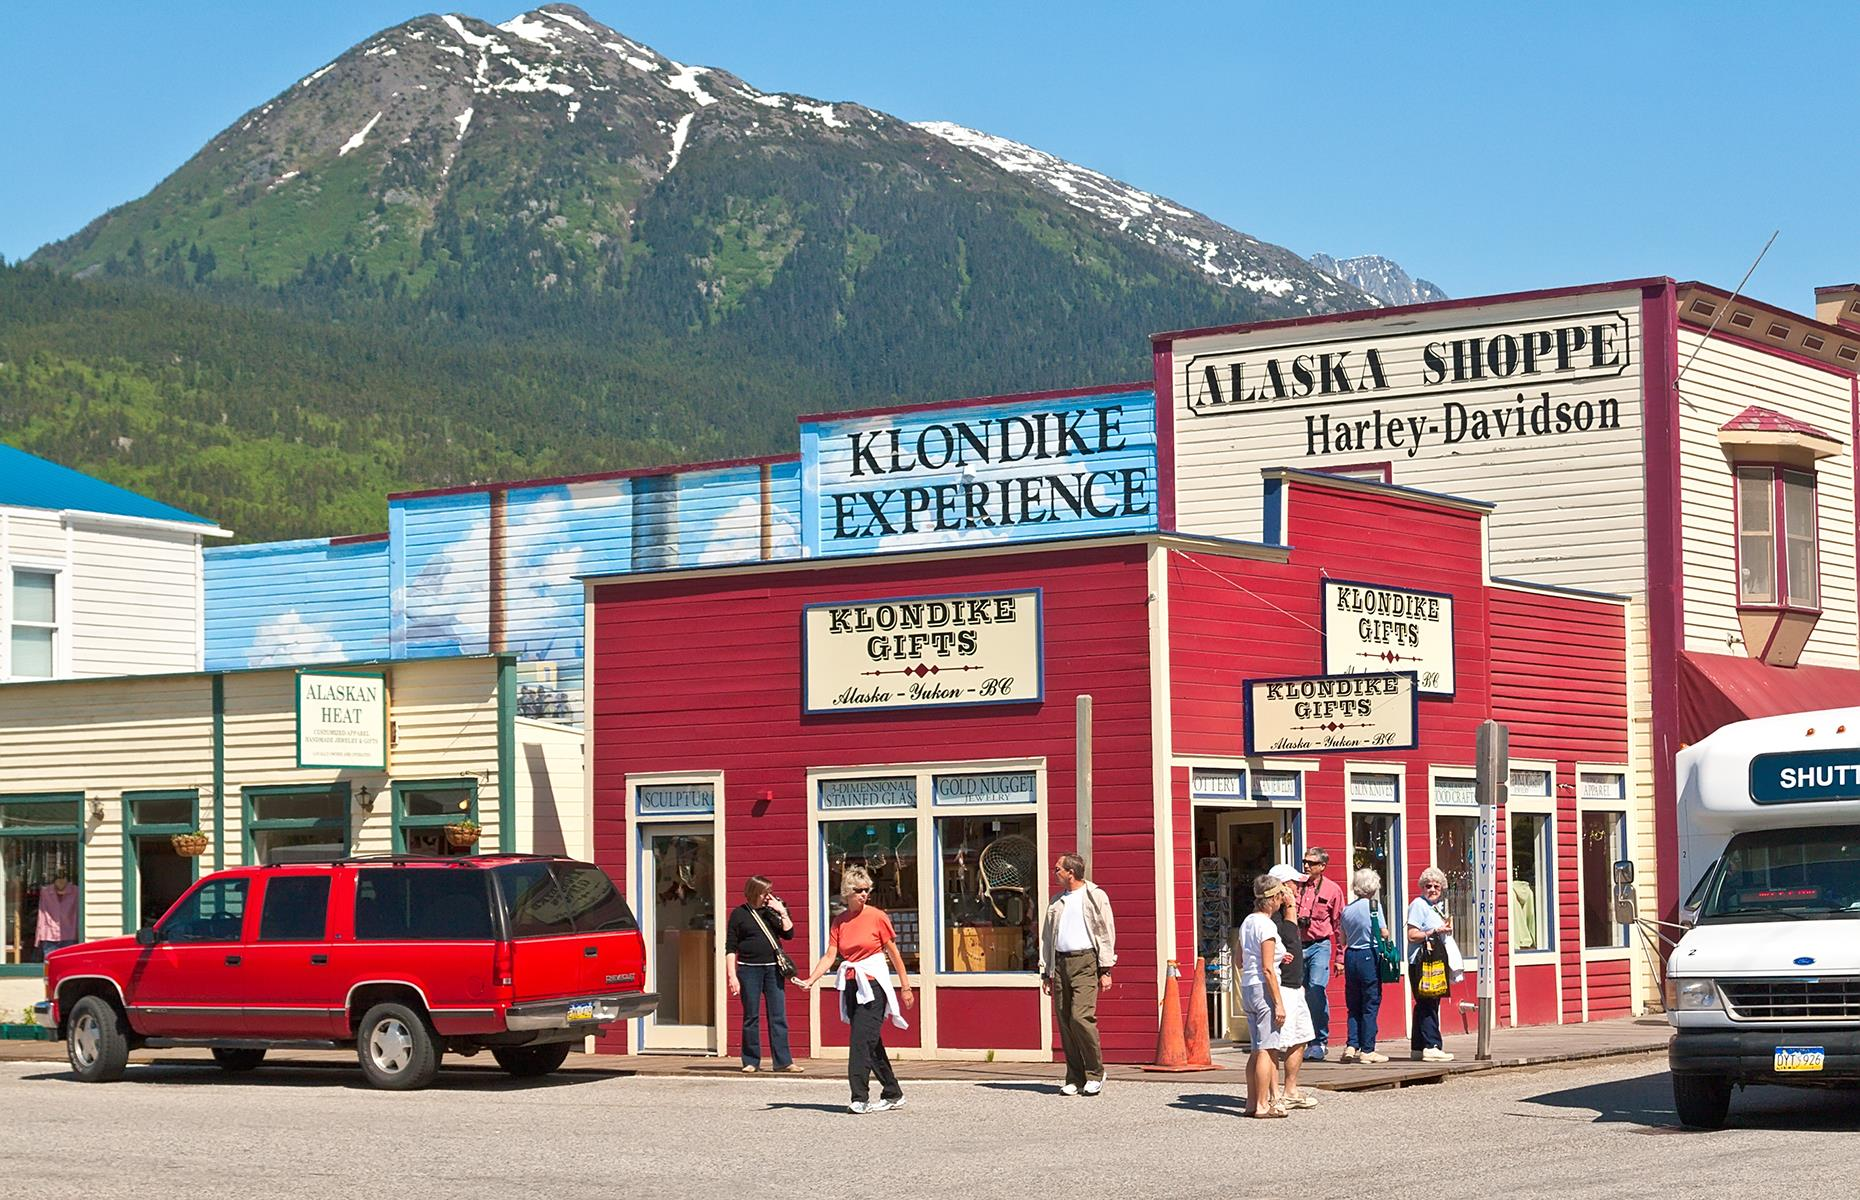 Slide 20 of 23: An area closely tied with the Klondike Gold Rush, Skagway's Historic District and White Pass encompass the historic parts of the 1987 town. There are almost 100 buildings in the area from the Gold Rush era, including the Arctic Brotherhood Hotel, which was built in 1899, and is covered in driftwood. A portion of the remaining historic buildings are preserved by the National Park Service.